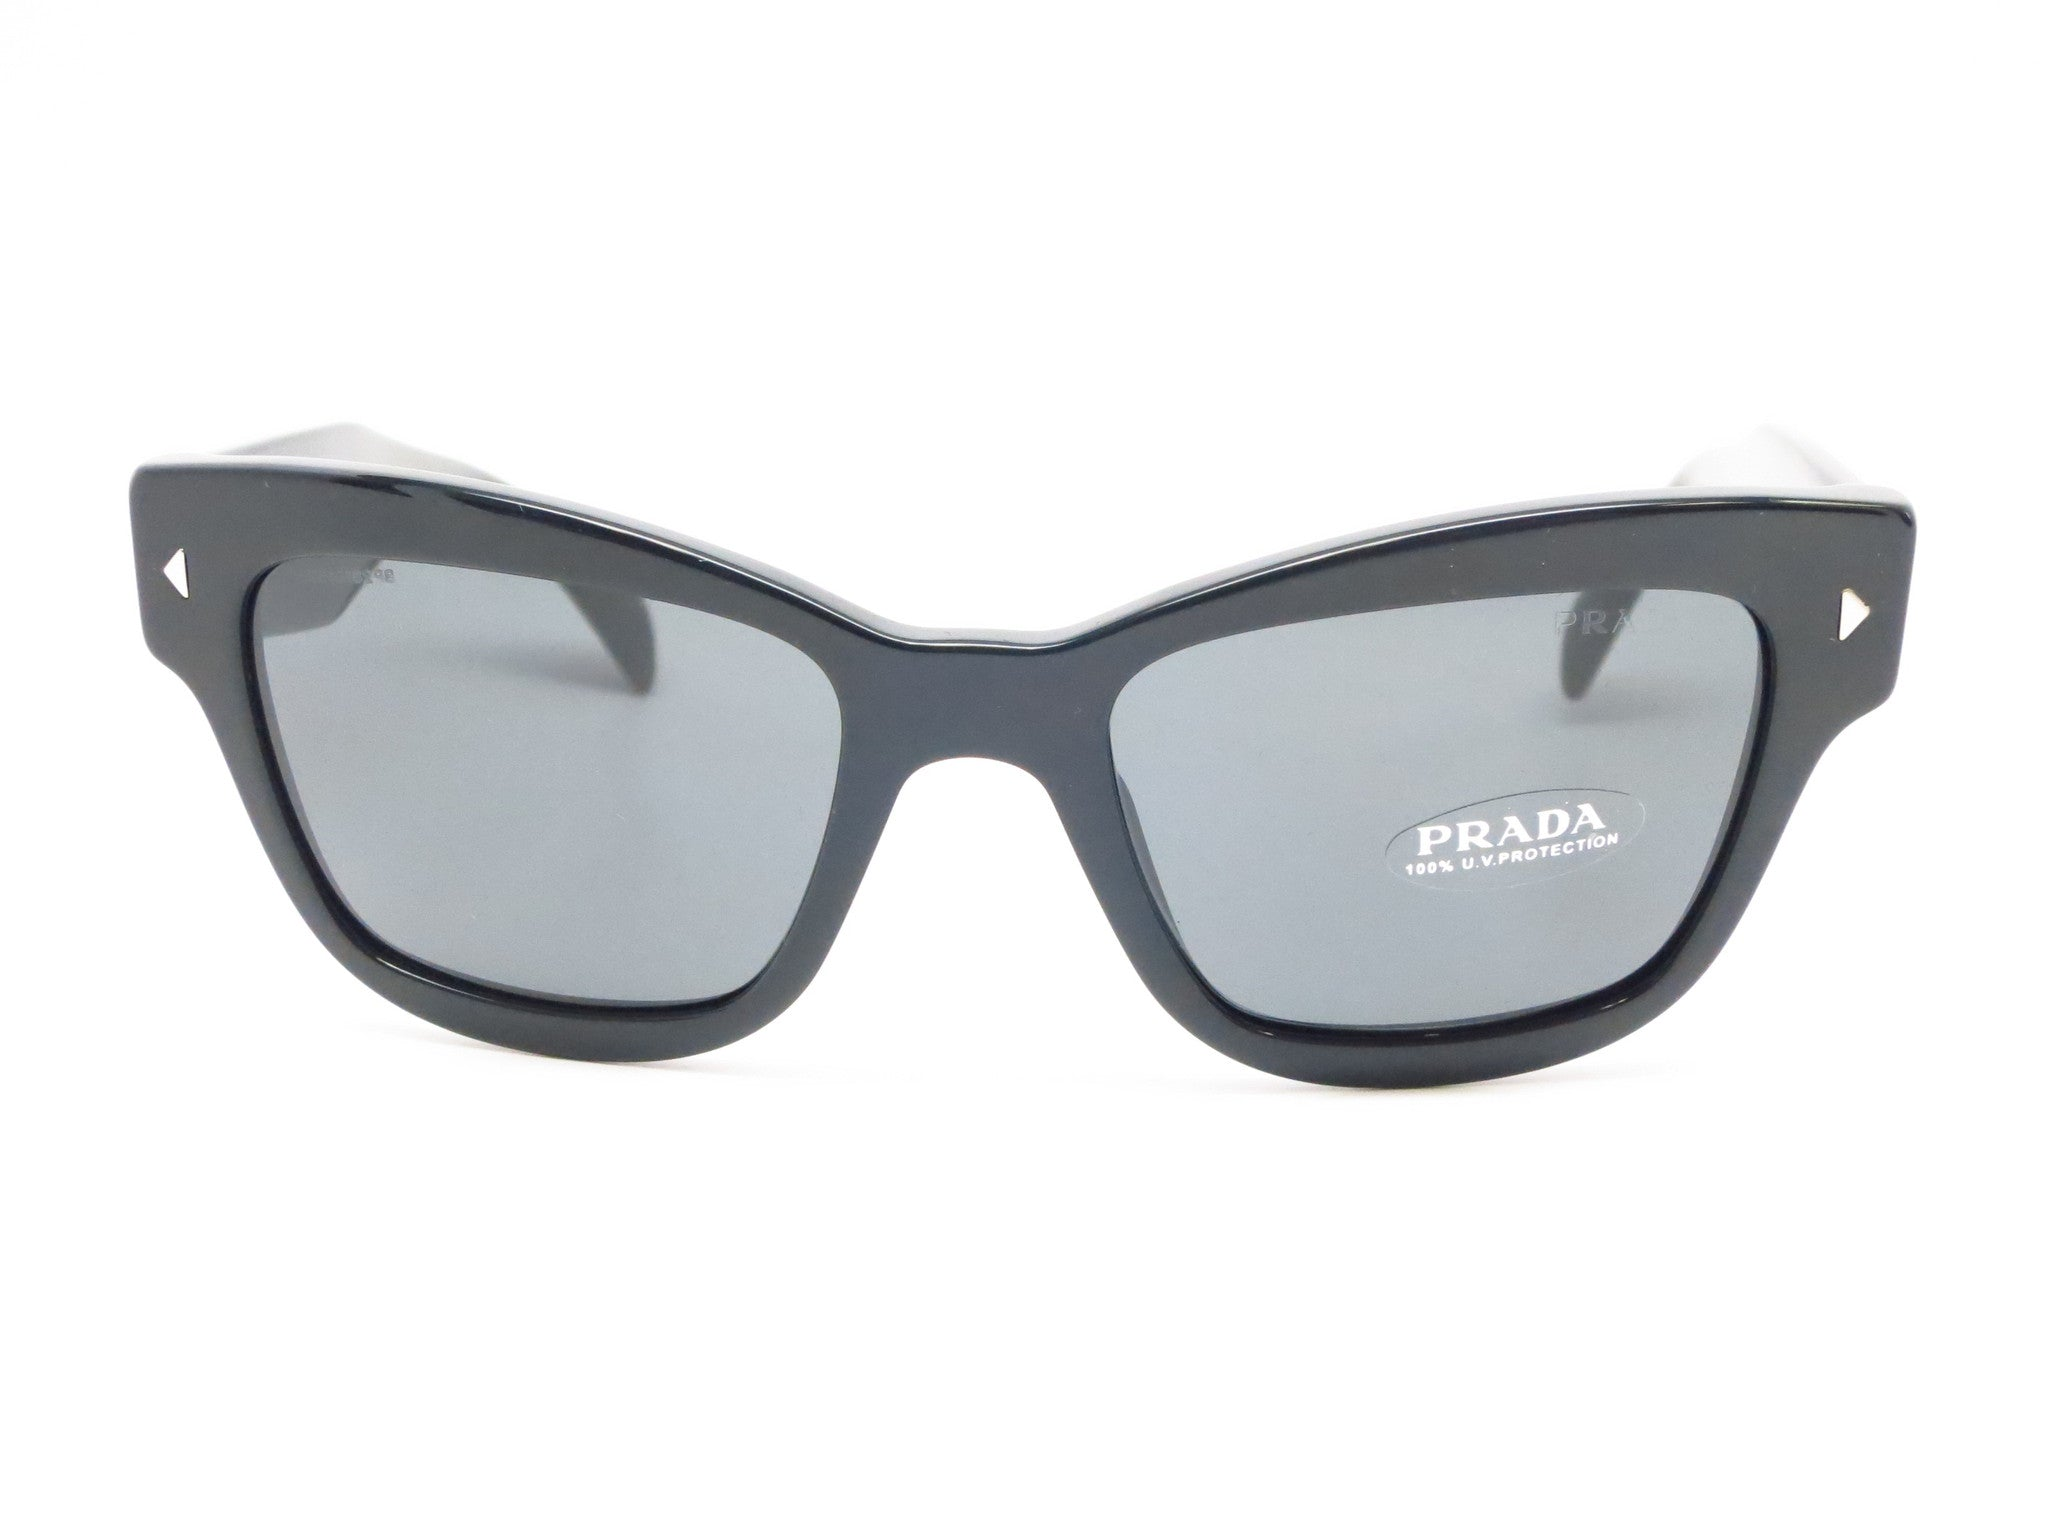 991def513 ... Prada SPR 29R 1AB-1A1 Black Sunglasses - Eye Heart Shades - Prada -  Sunglasses ...